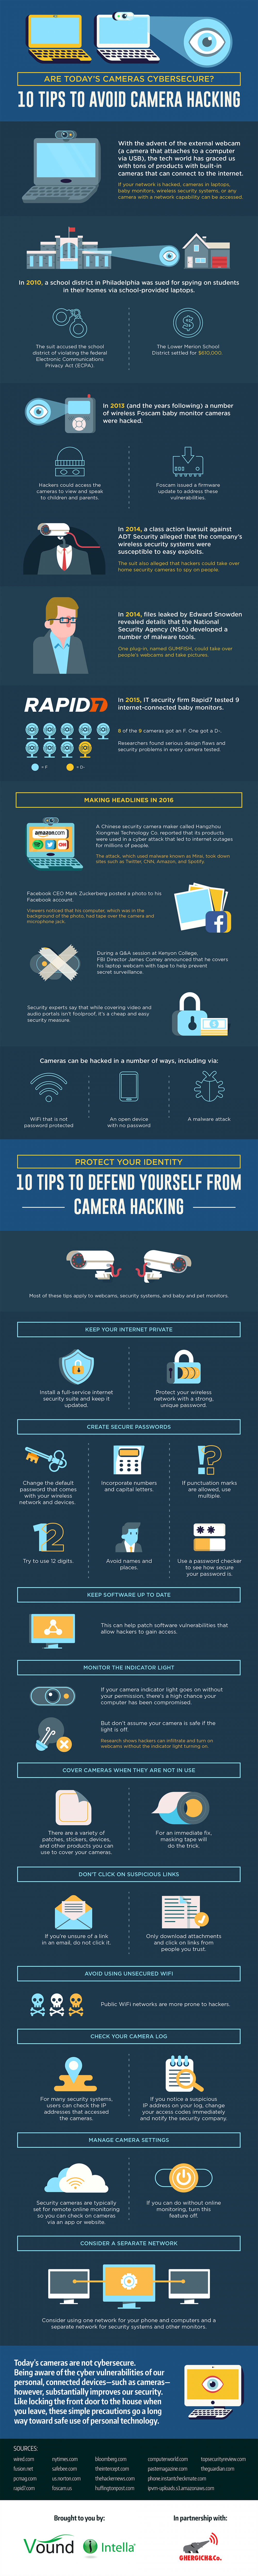 Are Today's Cameras Cybersecure? 10 Tips to Avoid Camera Hacking Infographic